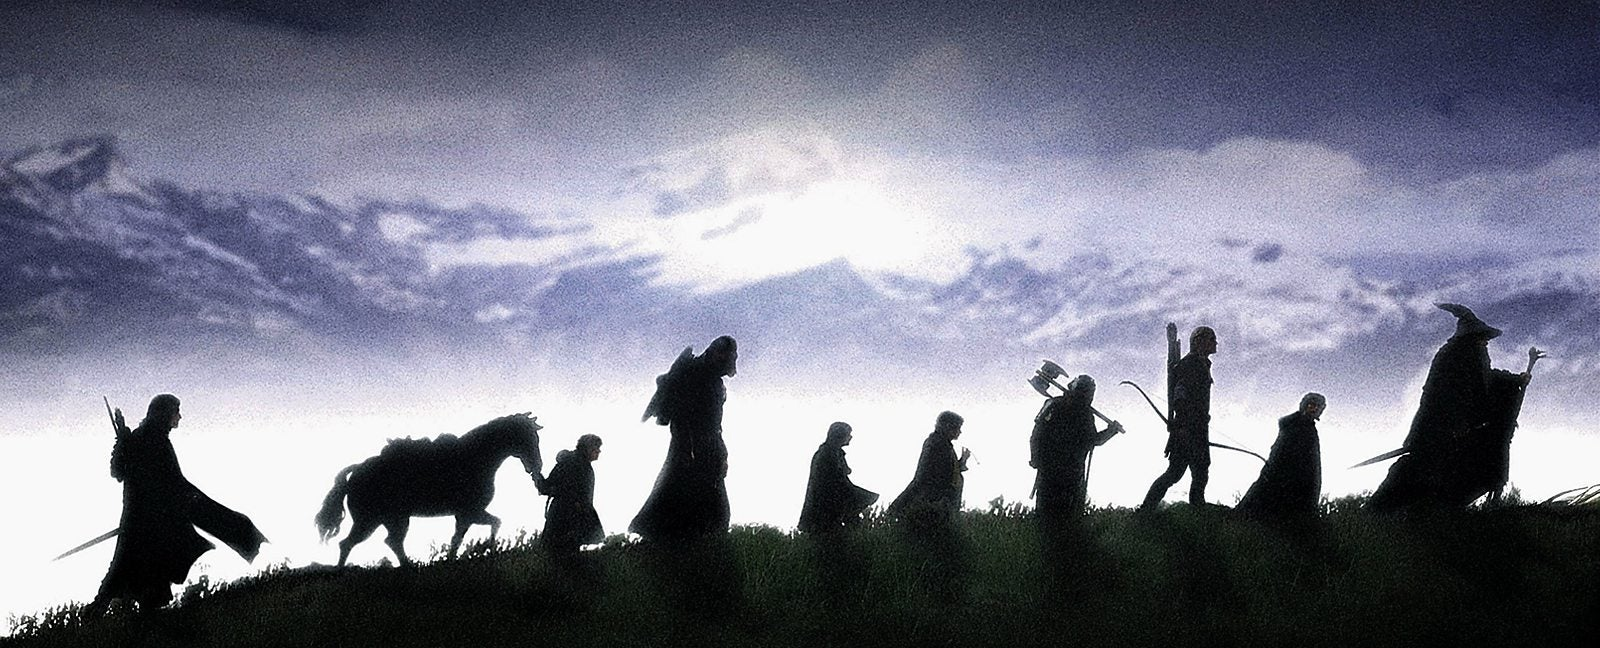 The Producers Of Lord Of The Rings Are Making A J.R.R. Tolkien Biopic